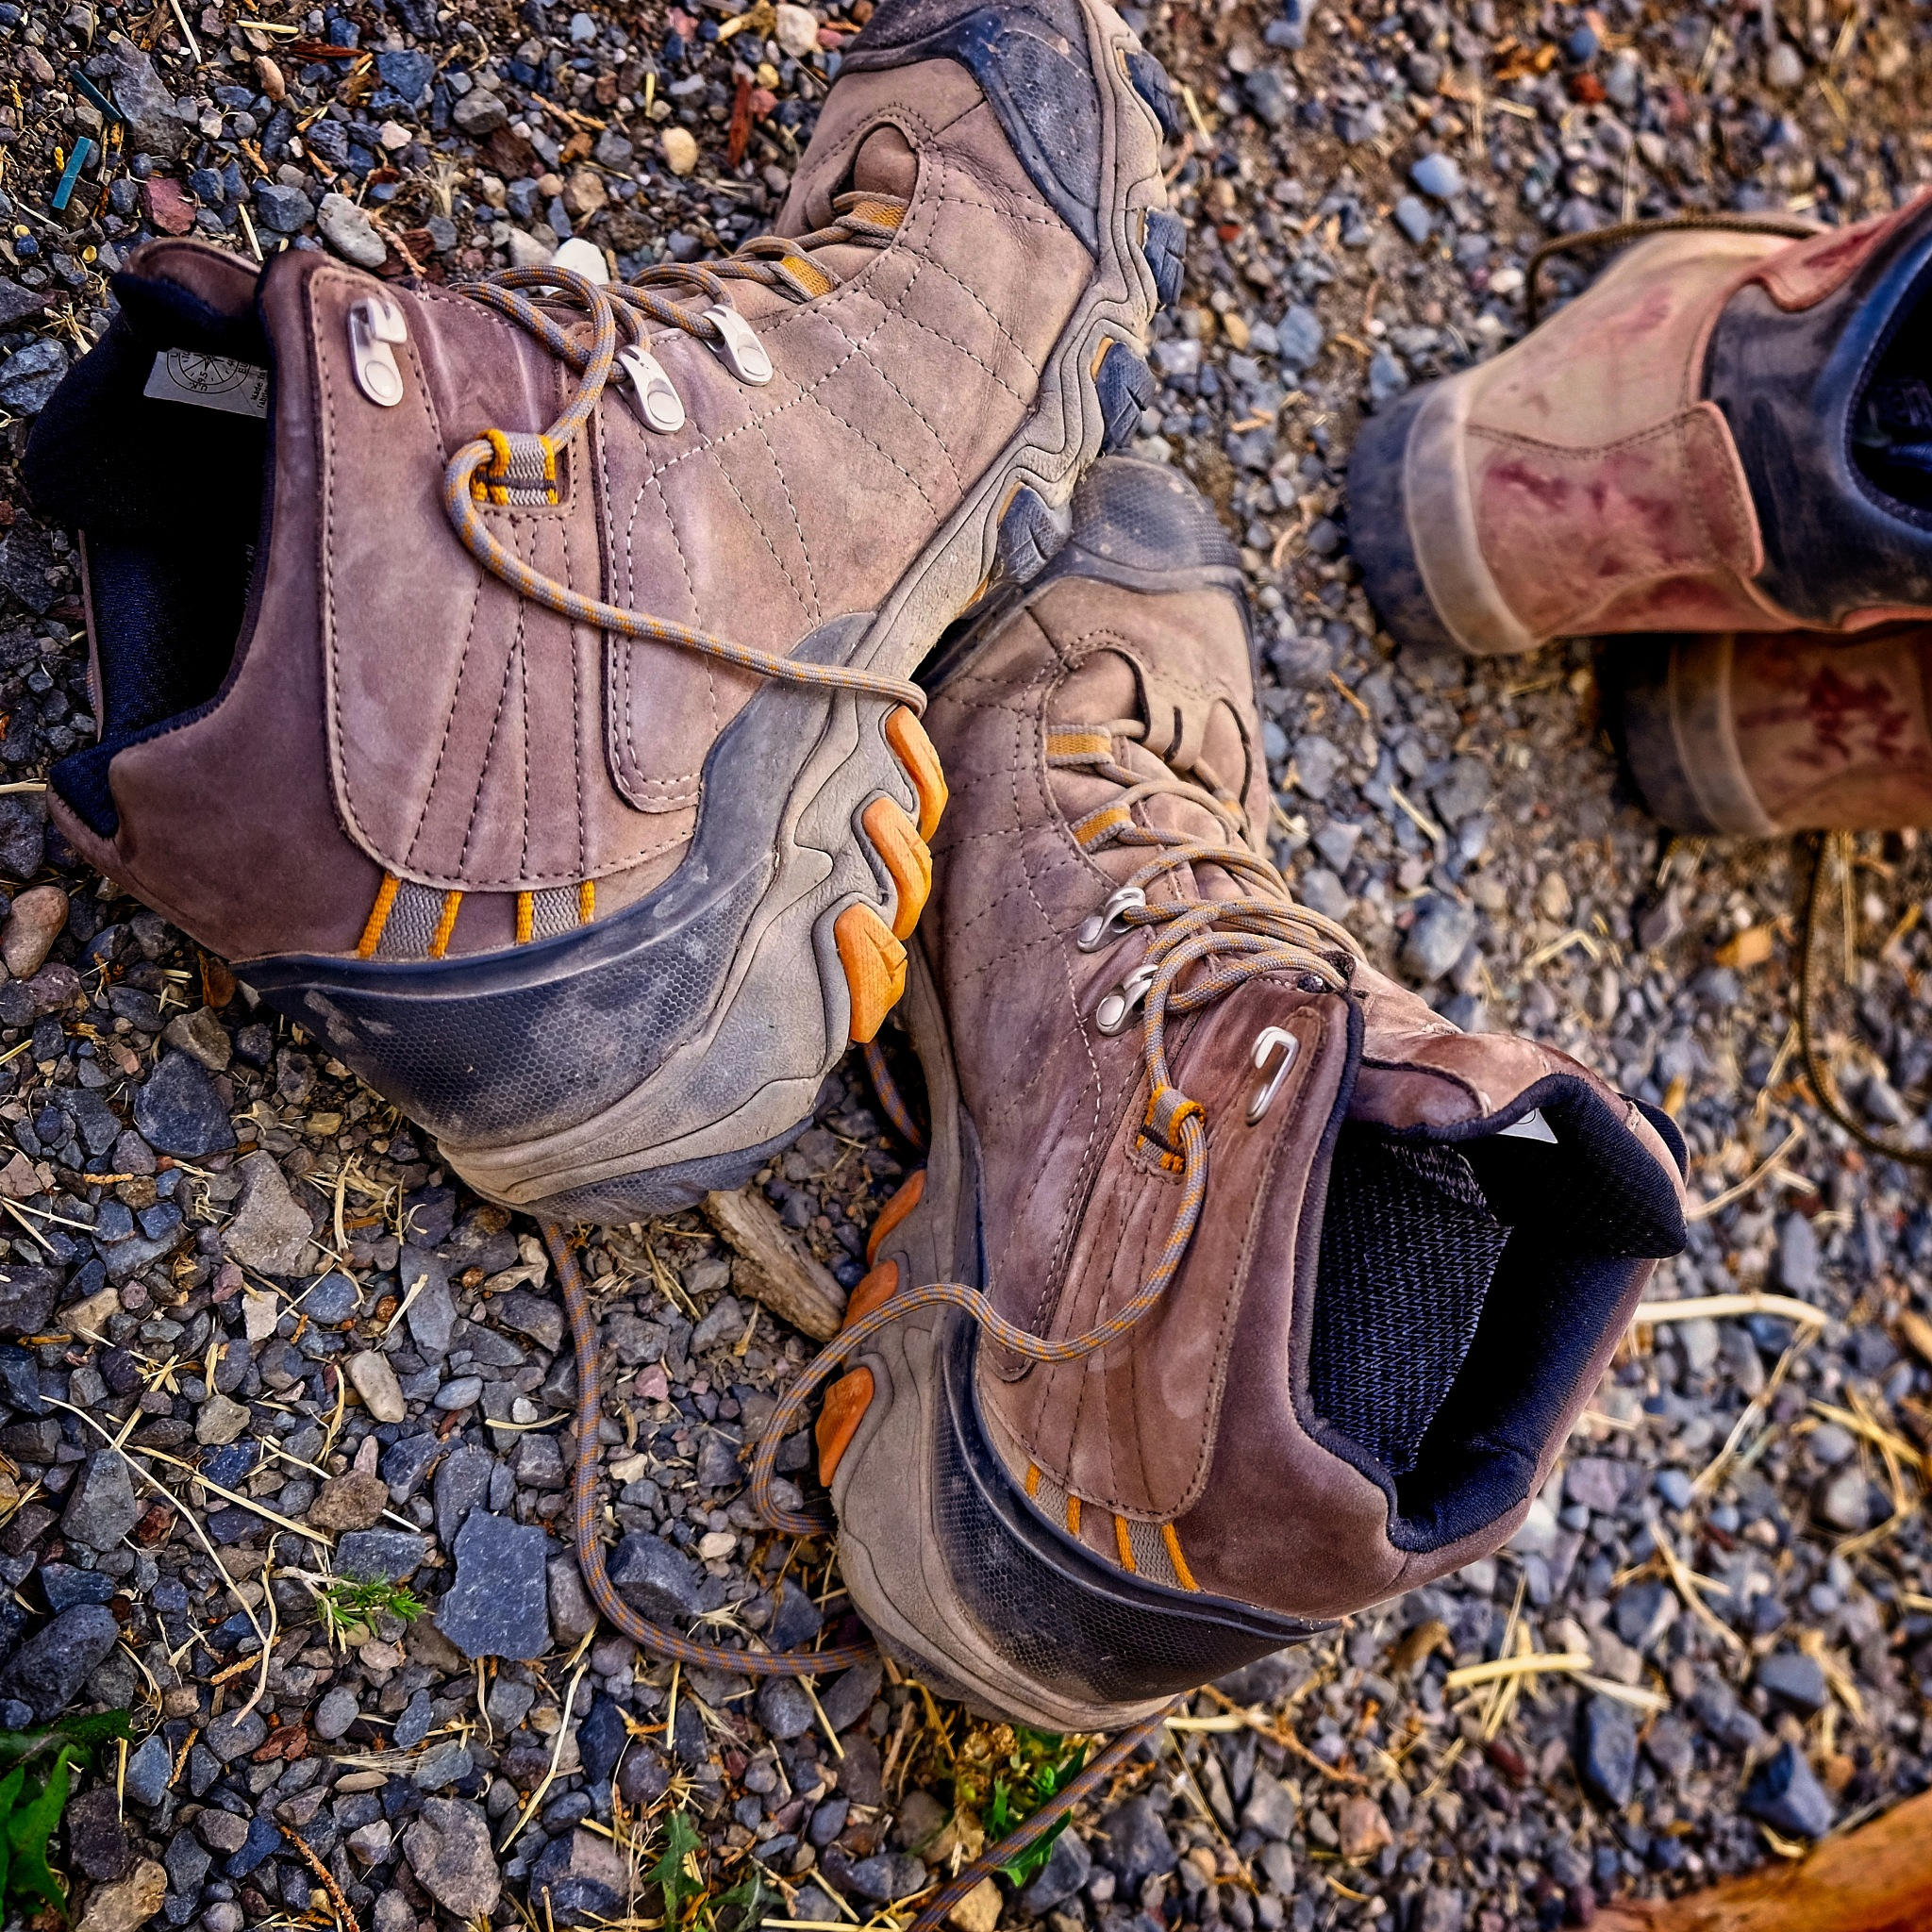 Hiking Boots by RenfroPhotography